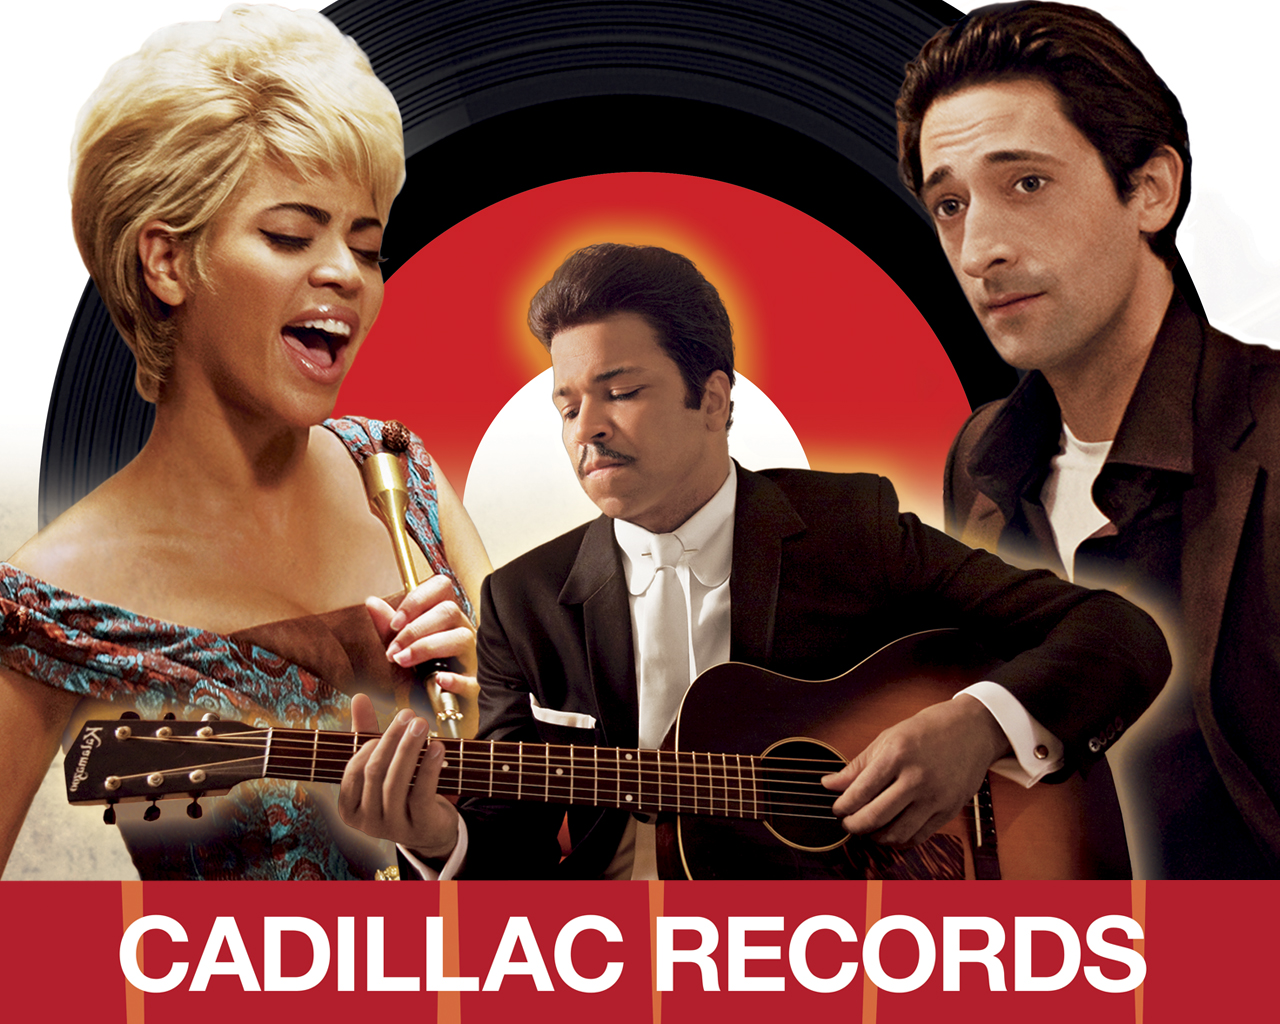 Cadillac Records, 2008, Film, Musikbiographie, 1950s, Chicago